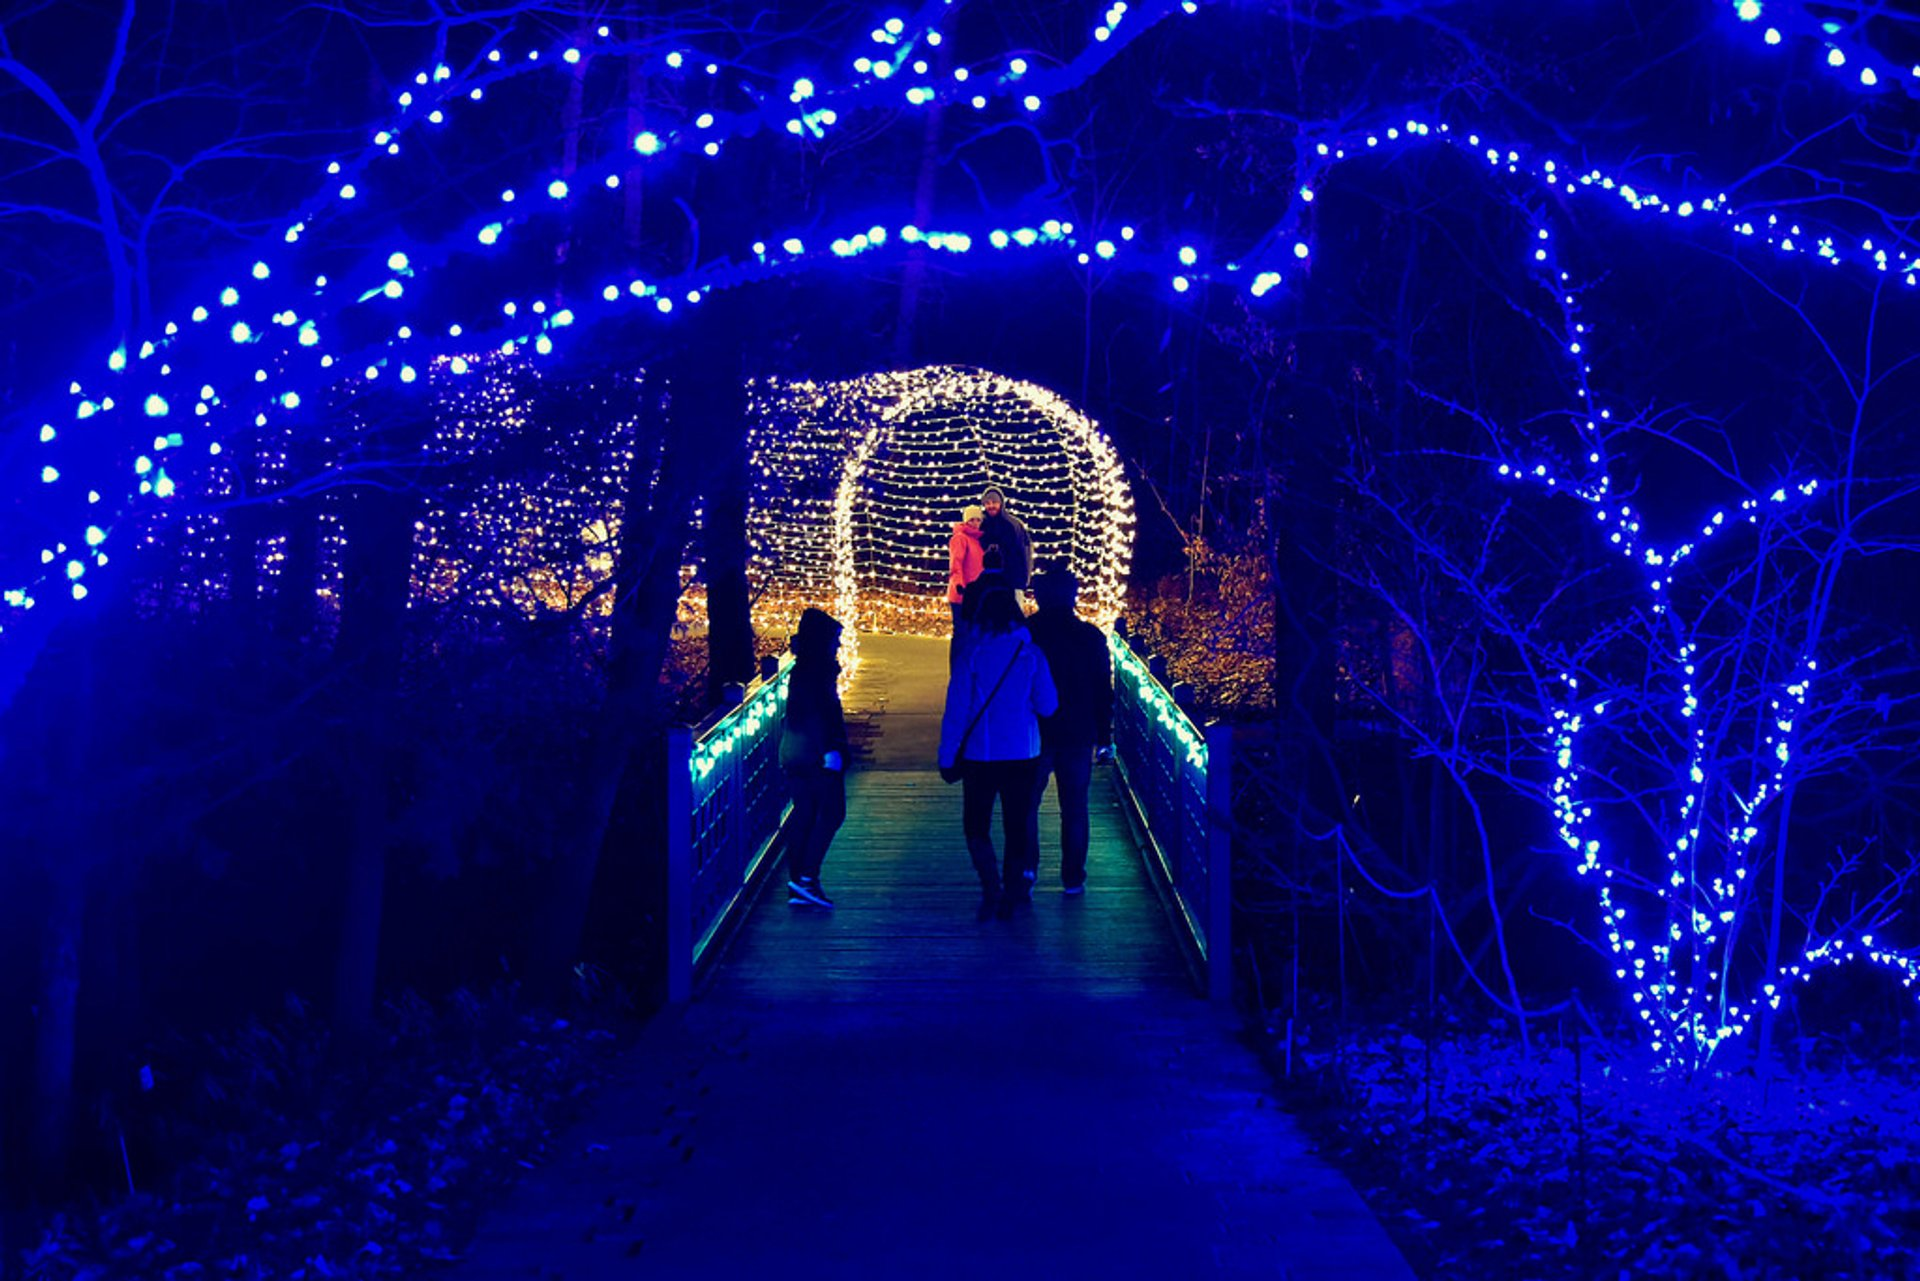 Powell Gardens Festival of Lights 2020-2021 in Midwest - Dates